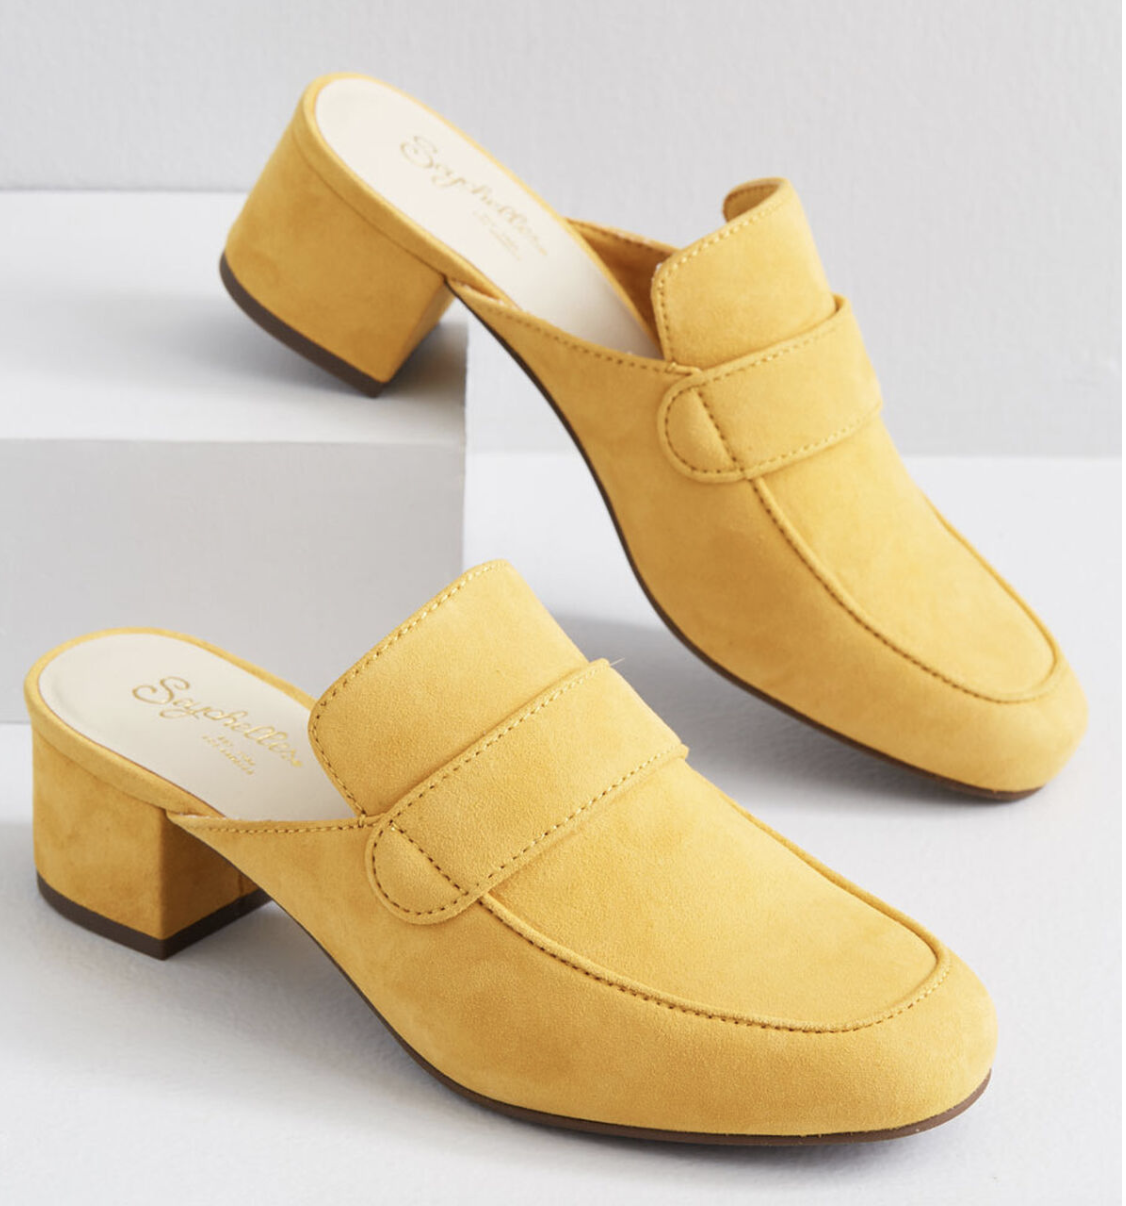 A pair of backless heeled yellow mules